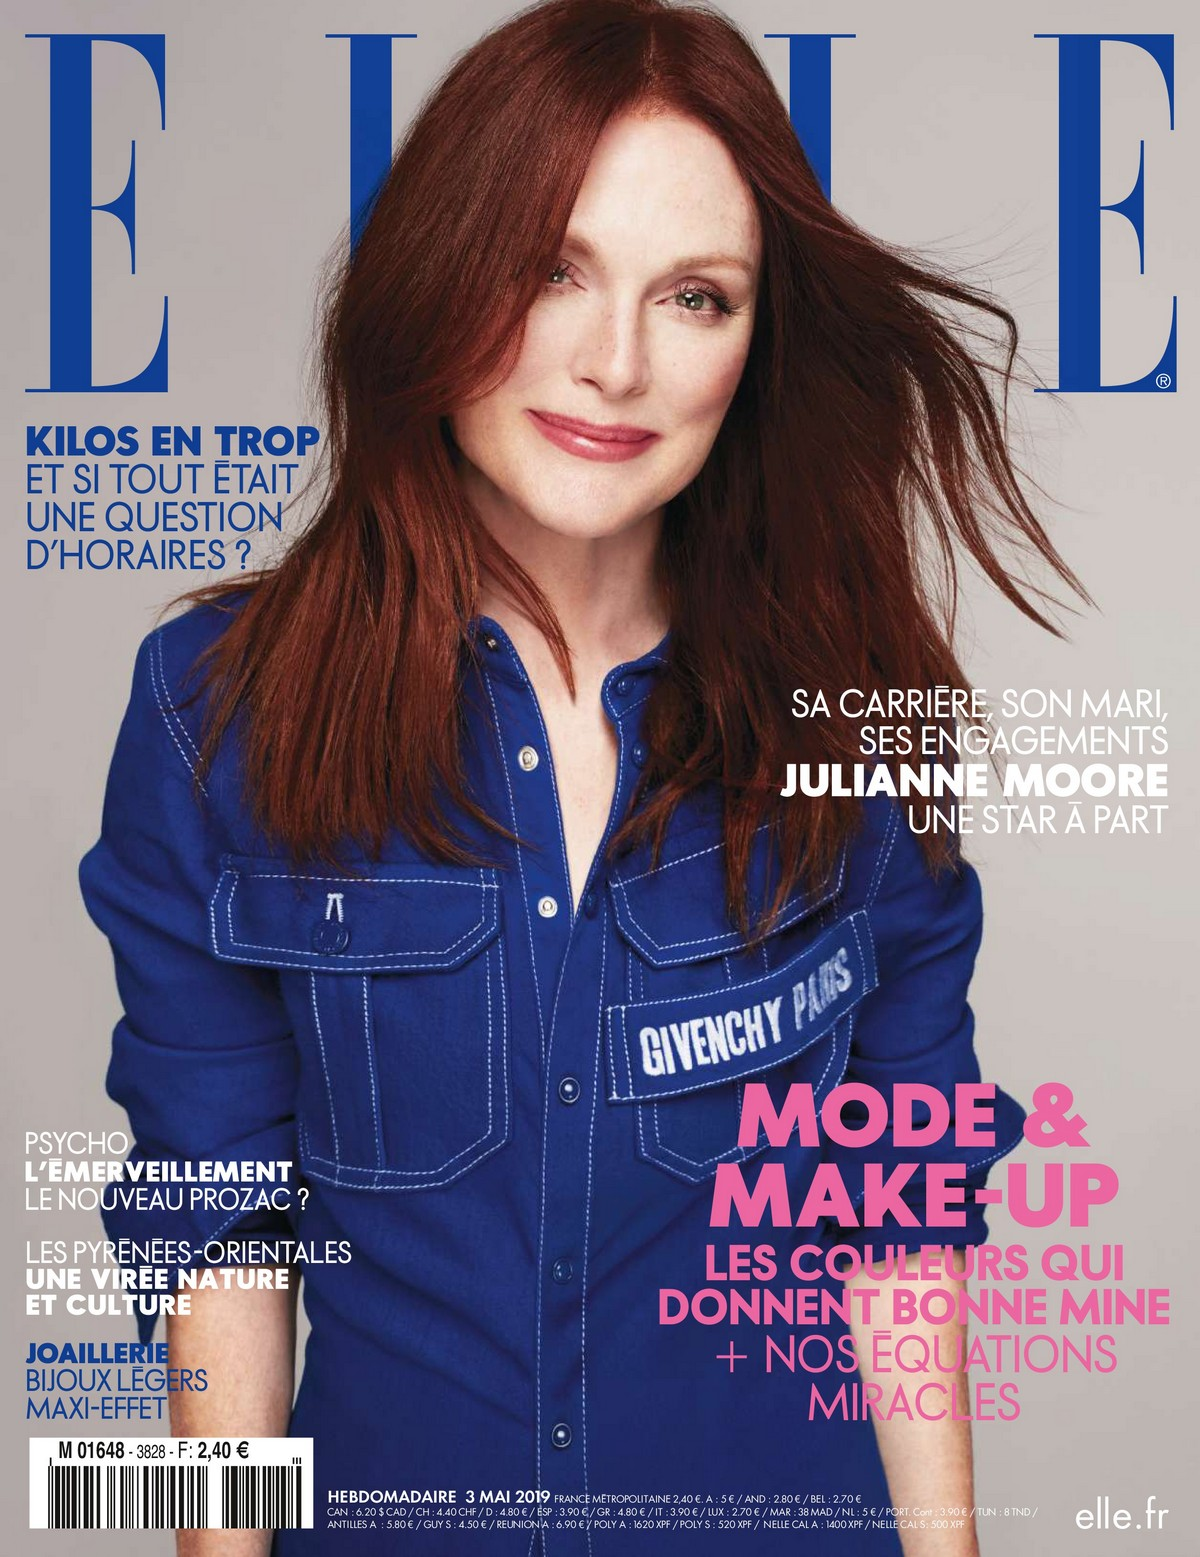 Julianne Moore Photoshoot for Elle France Magazine, May 2019 1